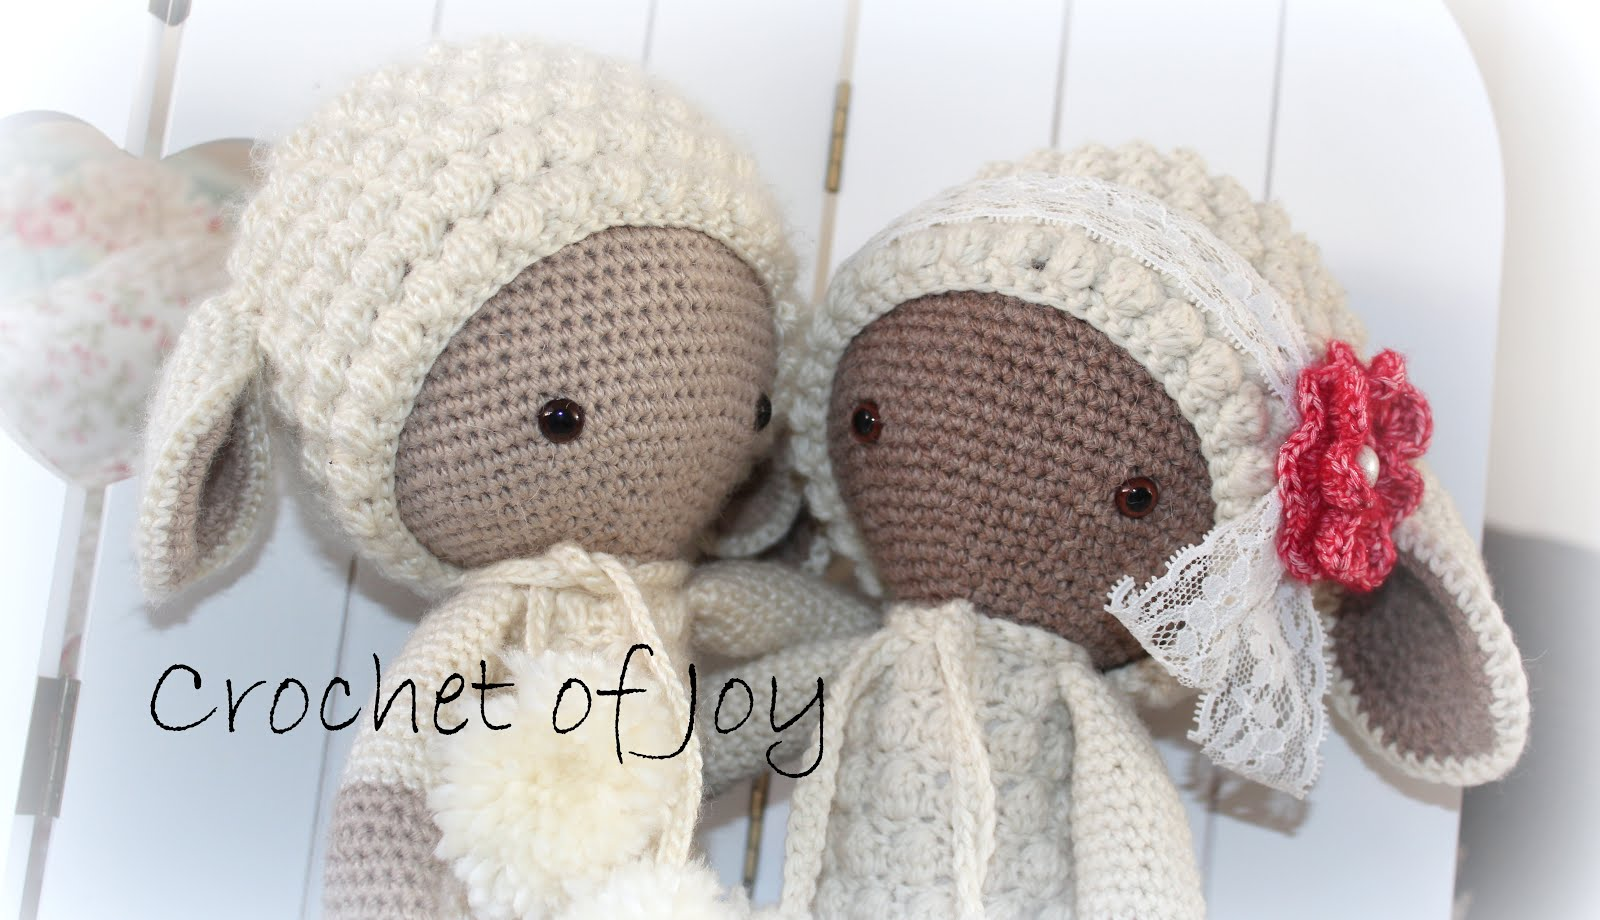 Crochet of Joy!